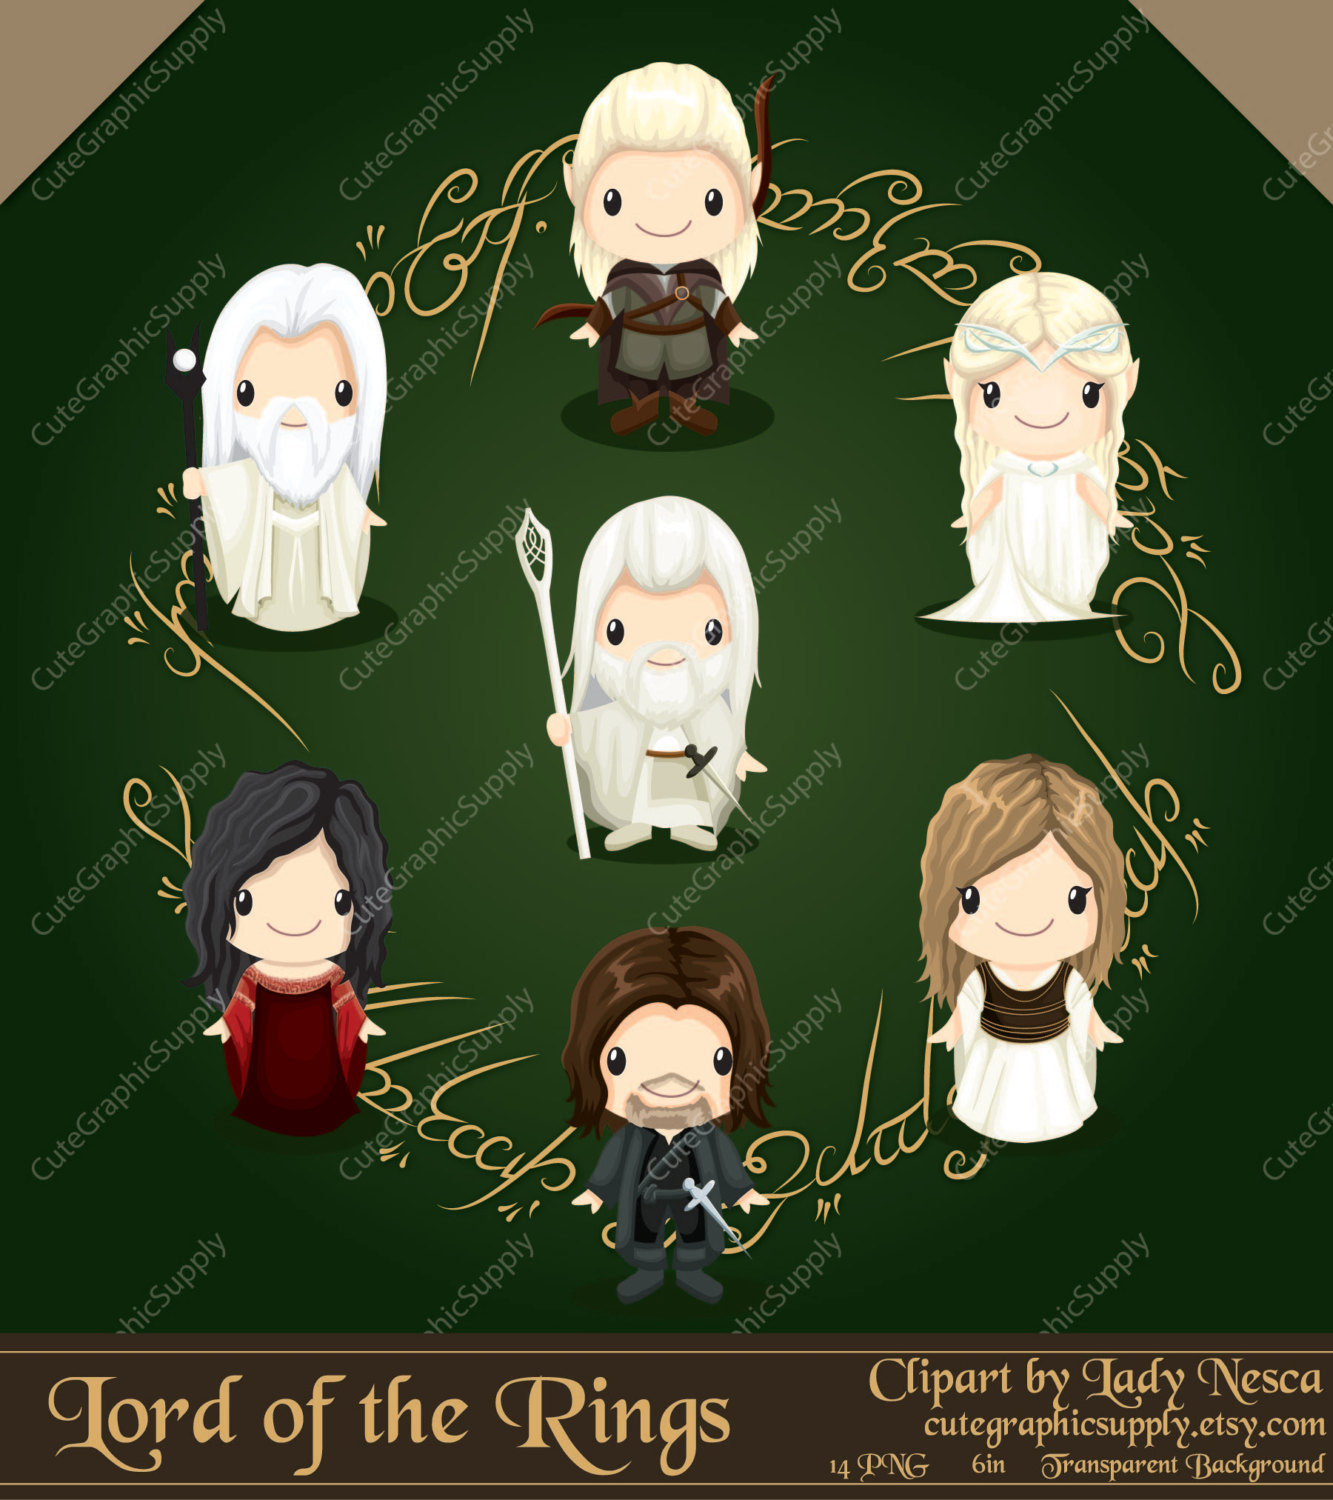 Hobbit clipart animated The Rings hobbit Lord